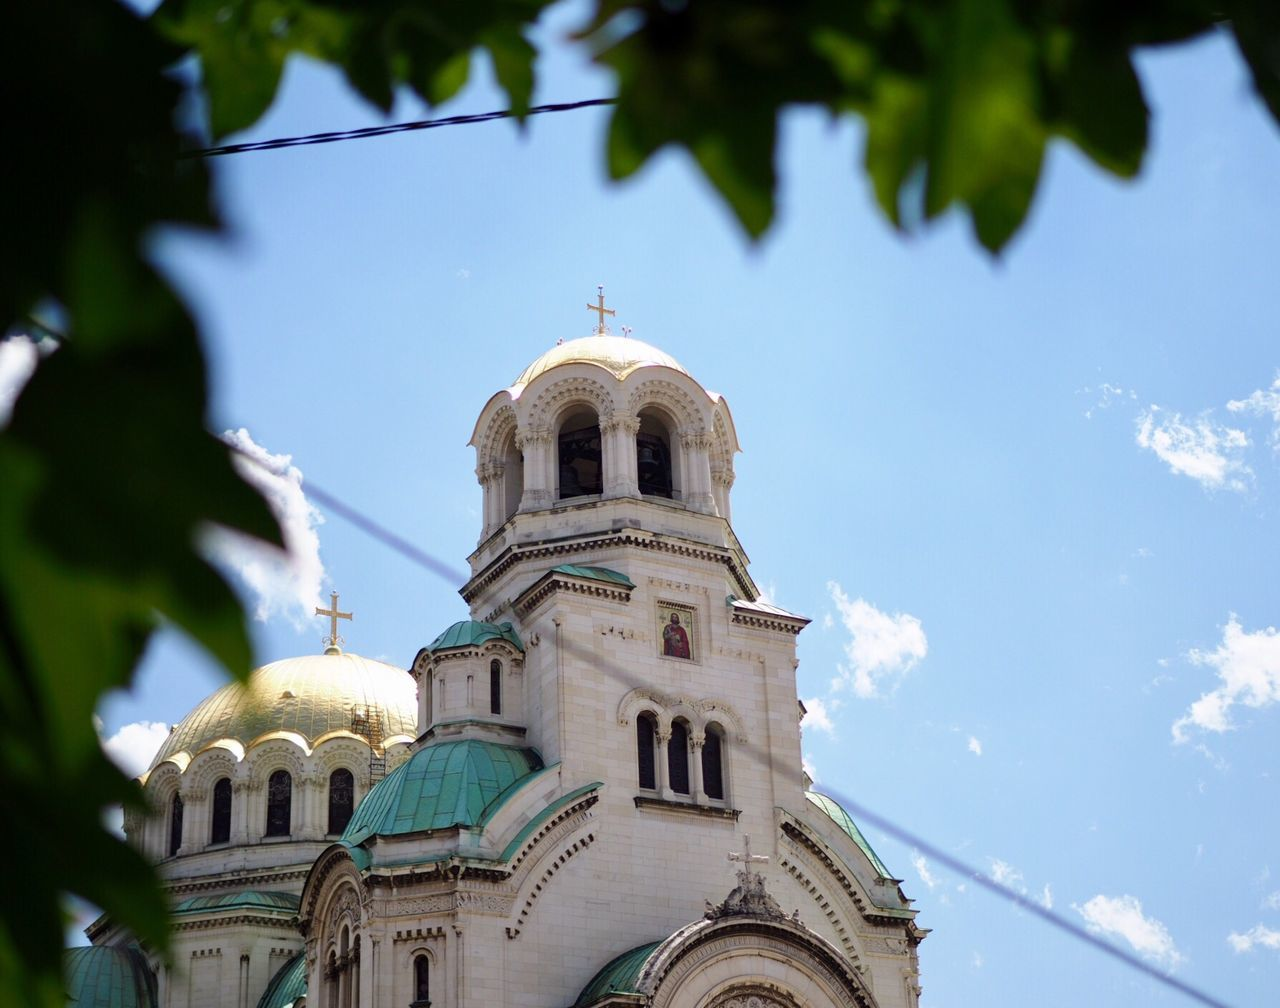 religion, place of worship, spirituality, architecture, dome, built structure, low angle view, building exterior, day, sky, cross, outdoors, history, no people, bell, bell tower